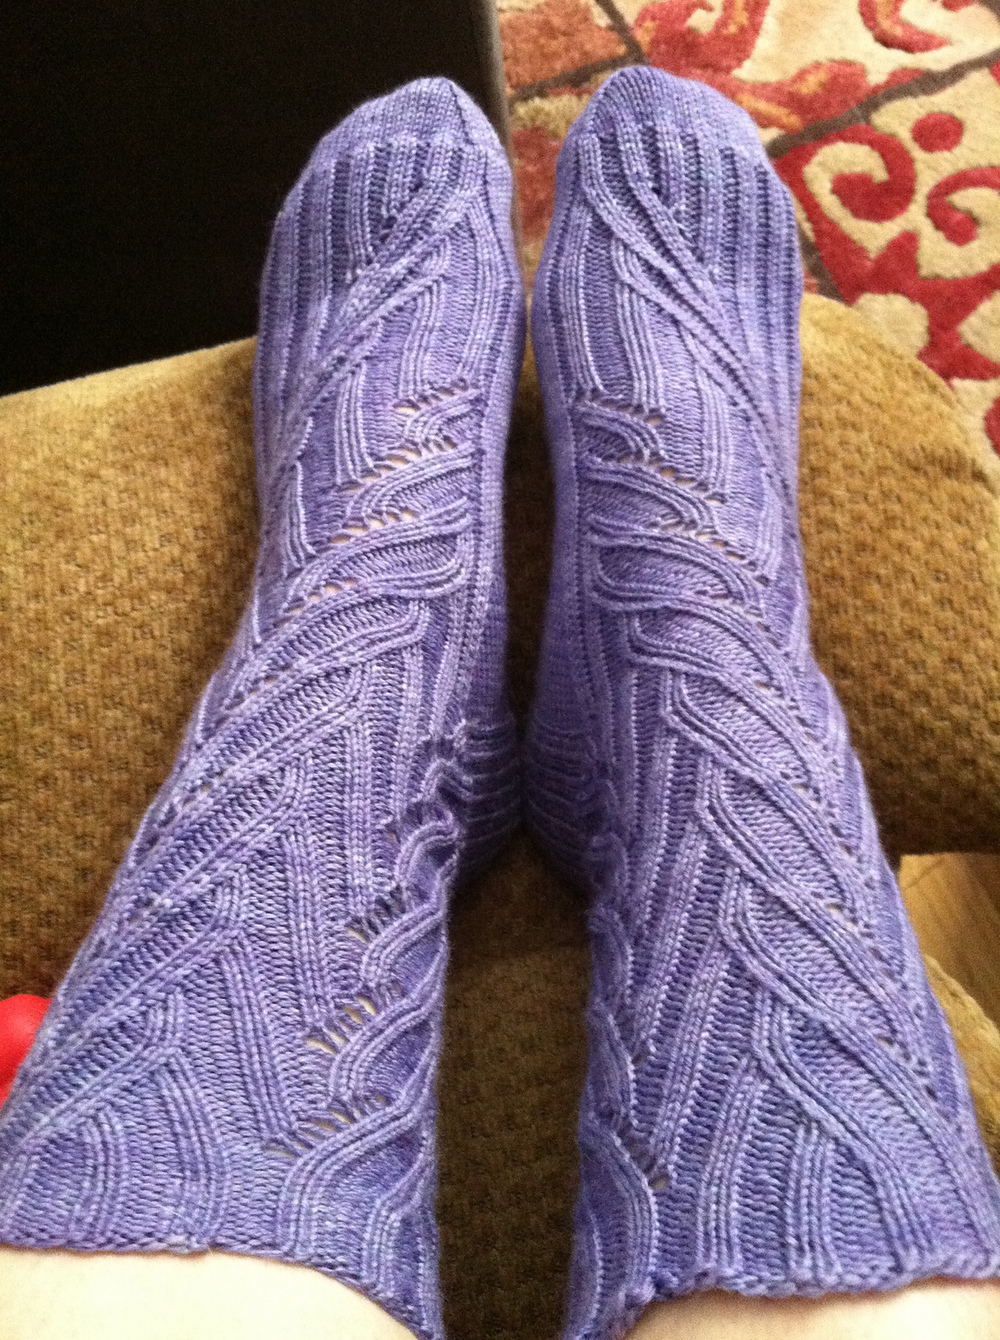 Though appearing in a more typical Lilac shade, I think the Coriolis Effect Socks by verybusymonkey would be a perfect pairing for Kilcoursie Fingering in my Lilac shade. Image courtesy of verybusymonkey.